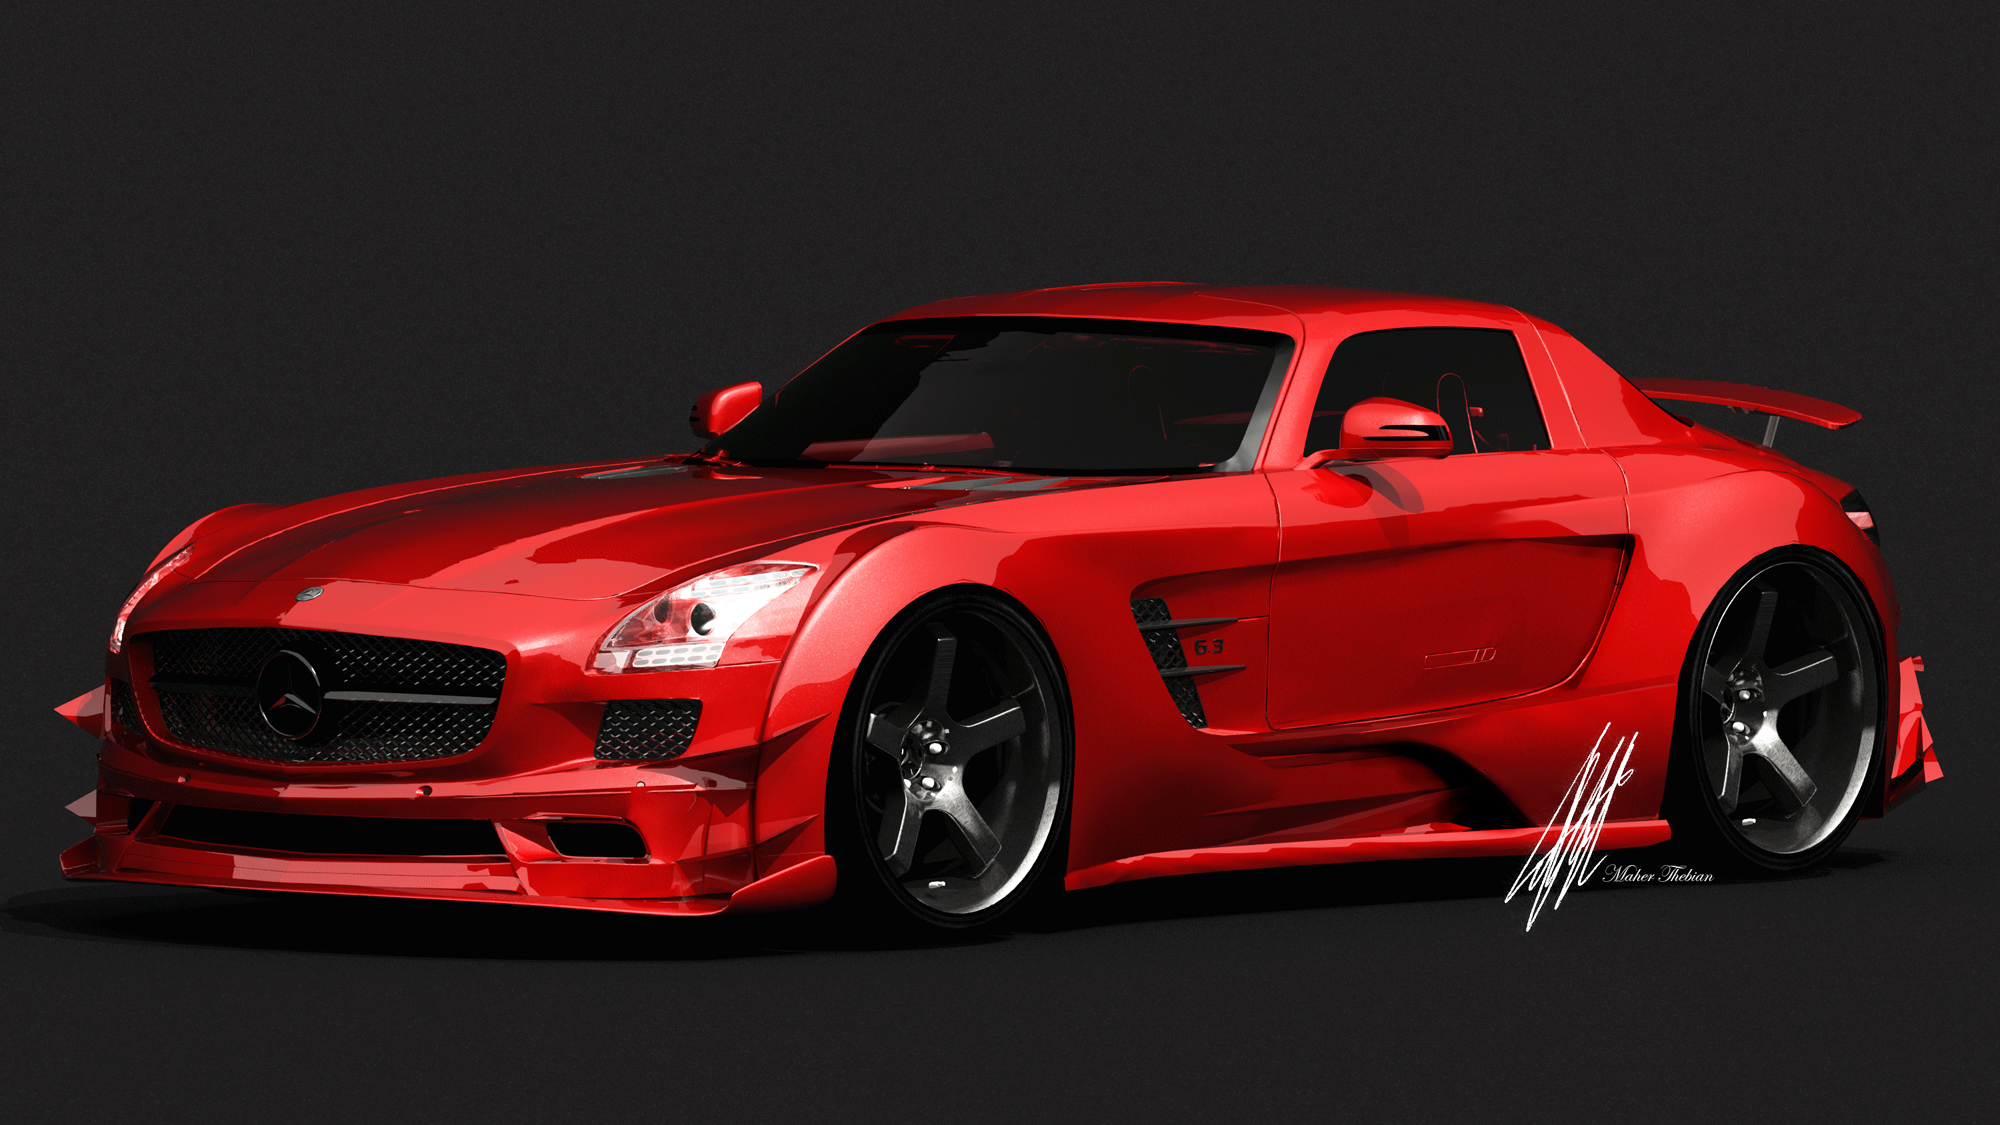 SLS BLACK SERIES HD Wallpaper